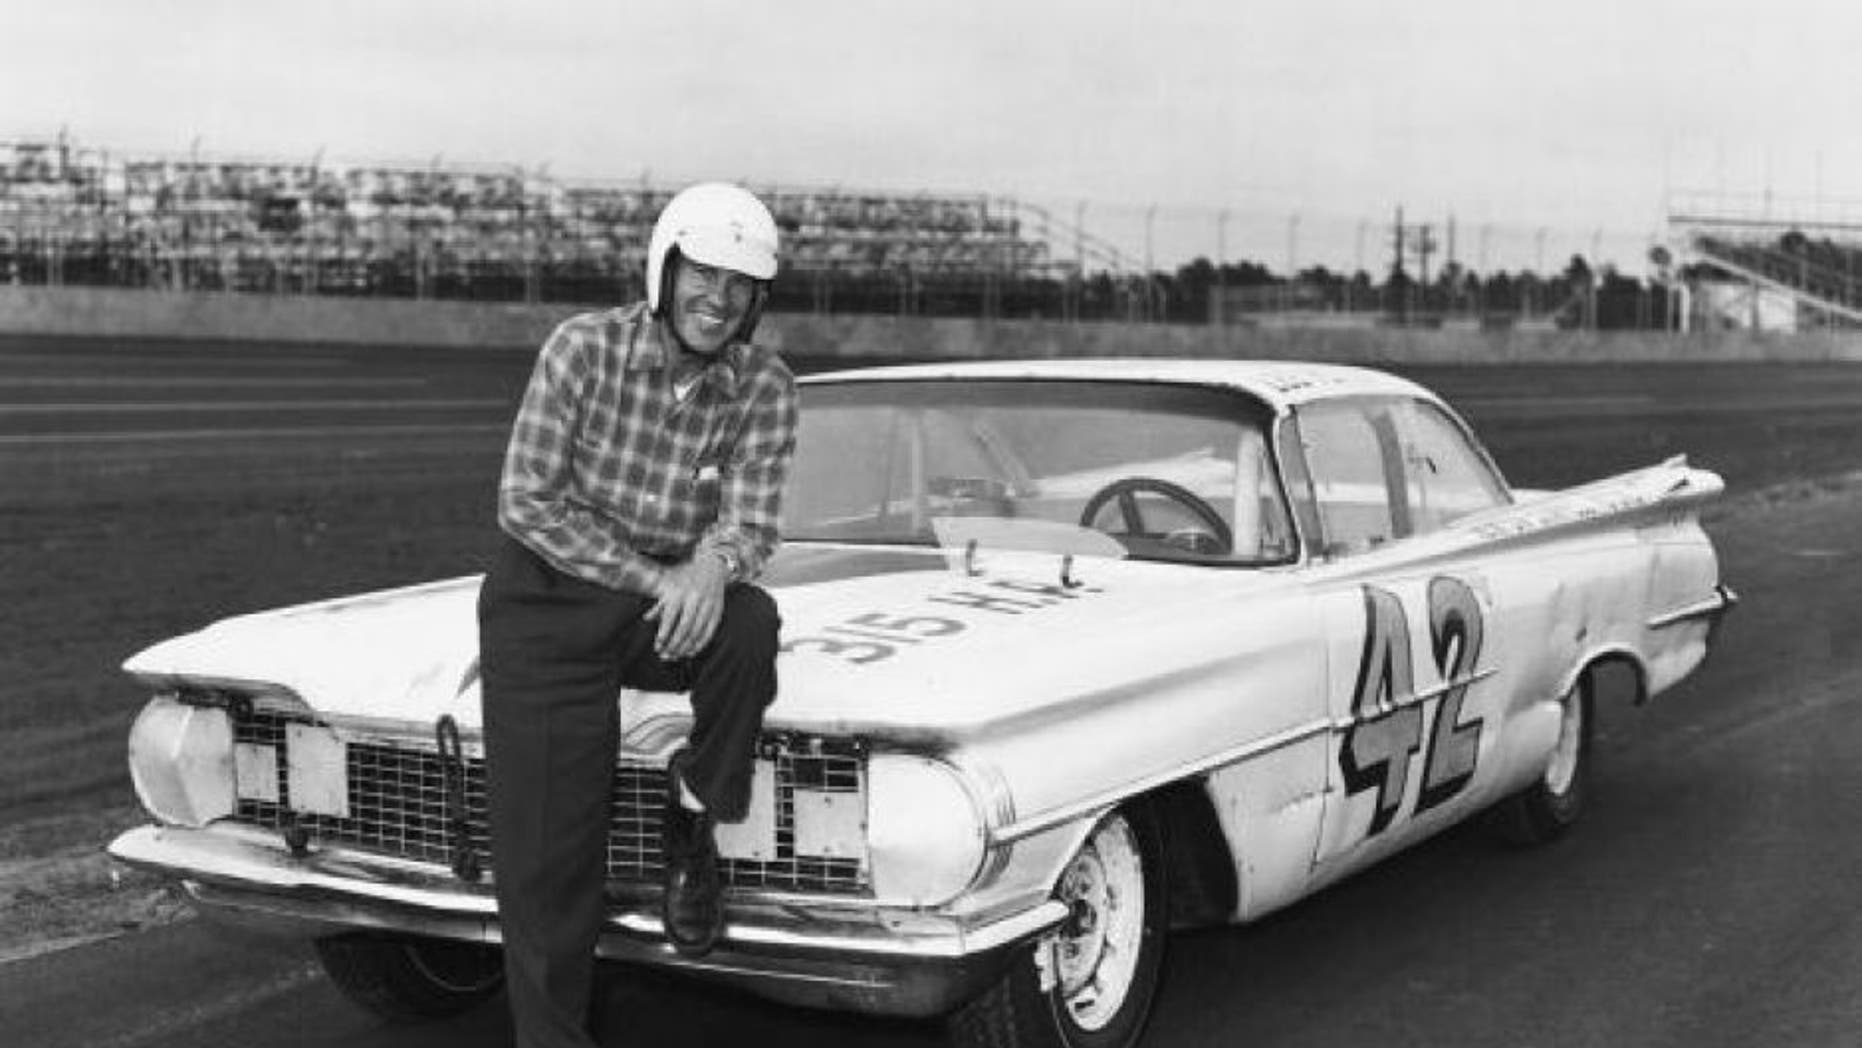 DAYTONA BEACH, FL - FEBRUARY 22: Lee Petty driver of the #42 Oldsmobile poses in front of his car before the first 1959 Winston Cup Daytona 500 race at the Daytona International Speedway on February 22, 1959 in Daytona Beach, Florida. He would win the first Daytona 500. (Photo by ISC Archives via Getty Images)